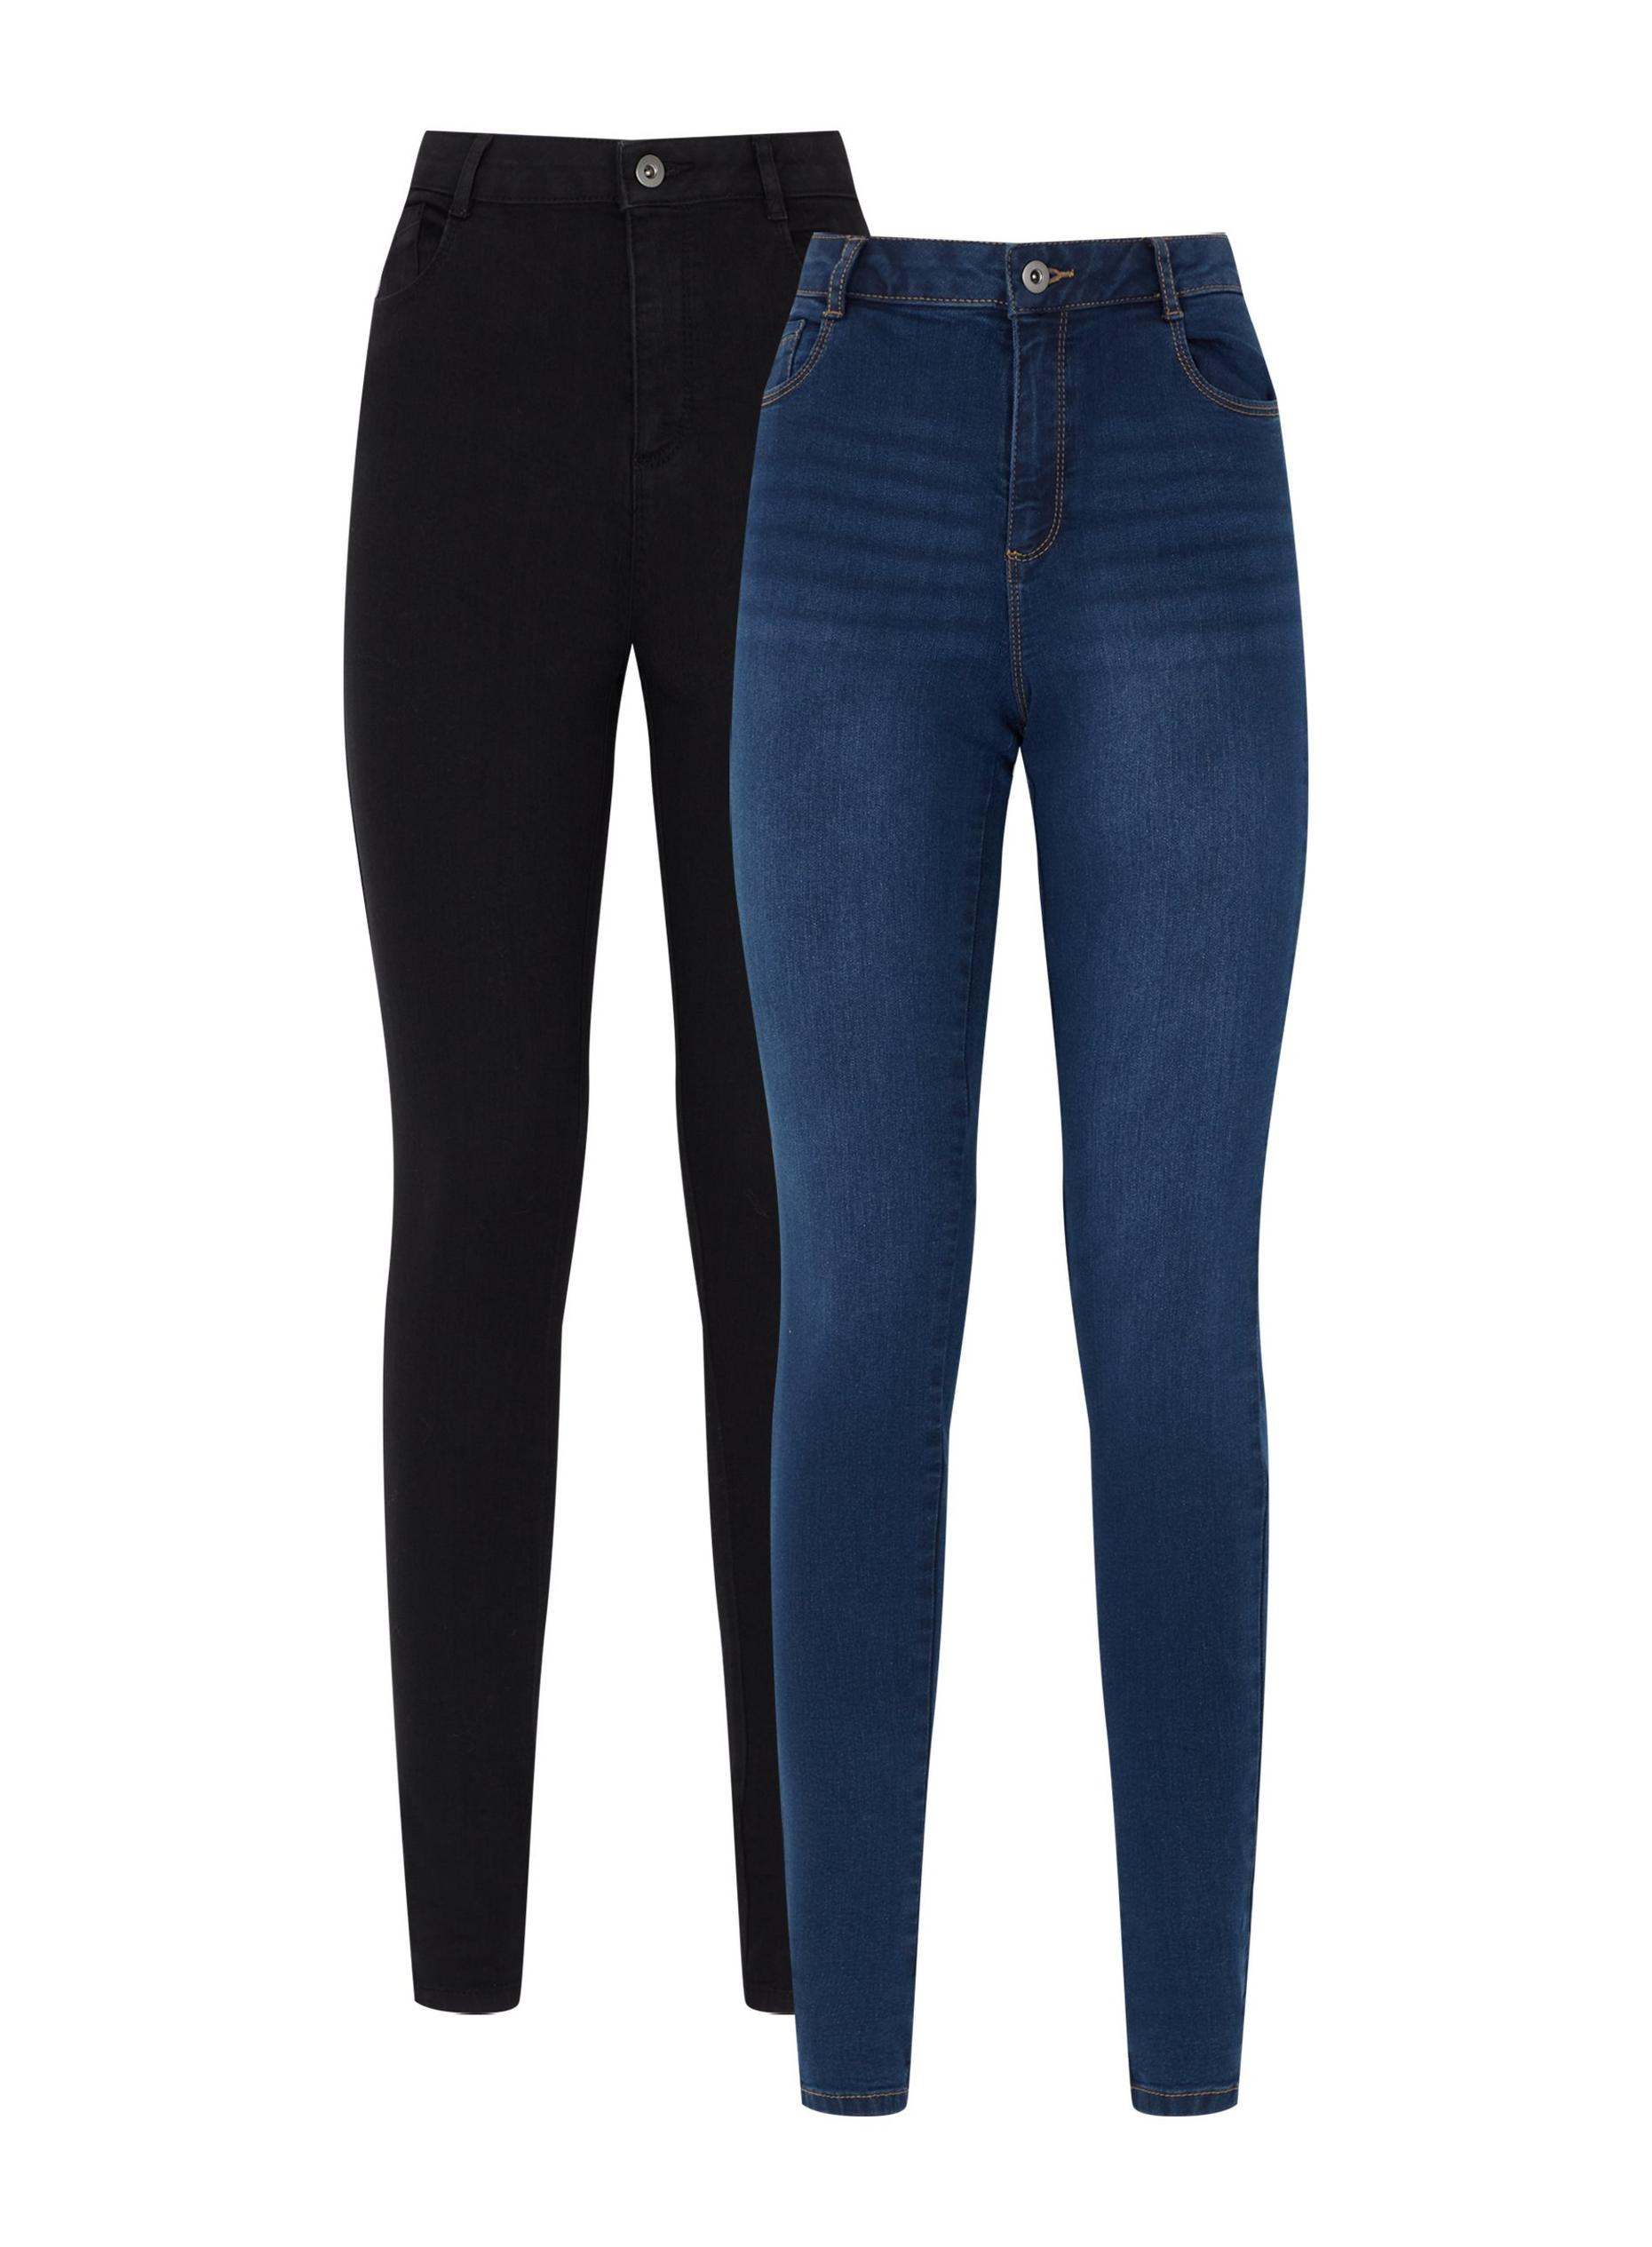 Tall 2 Pack Black and Mid Wash Jean